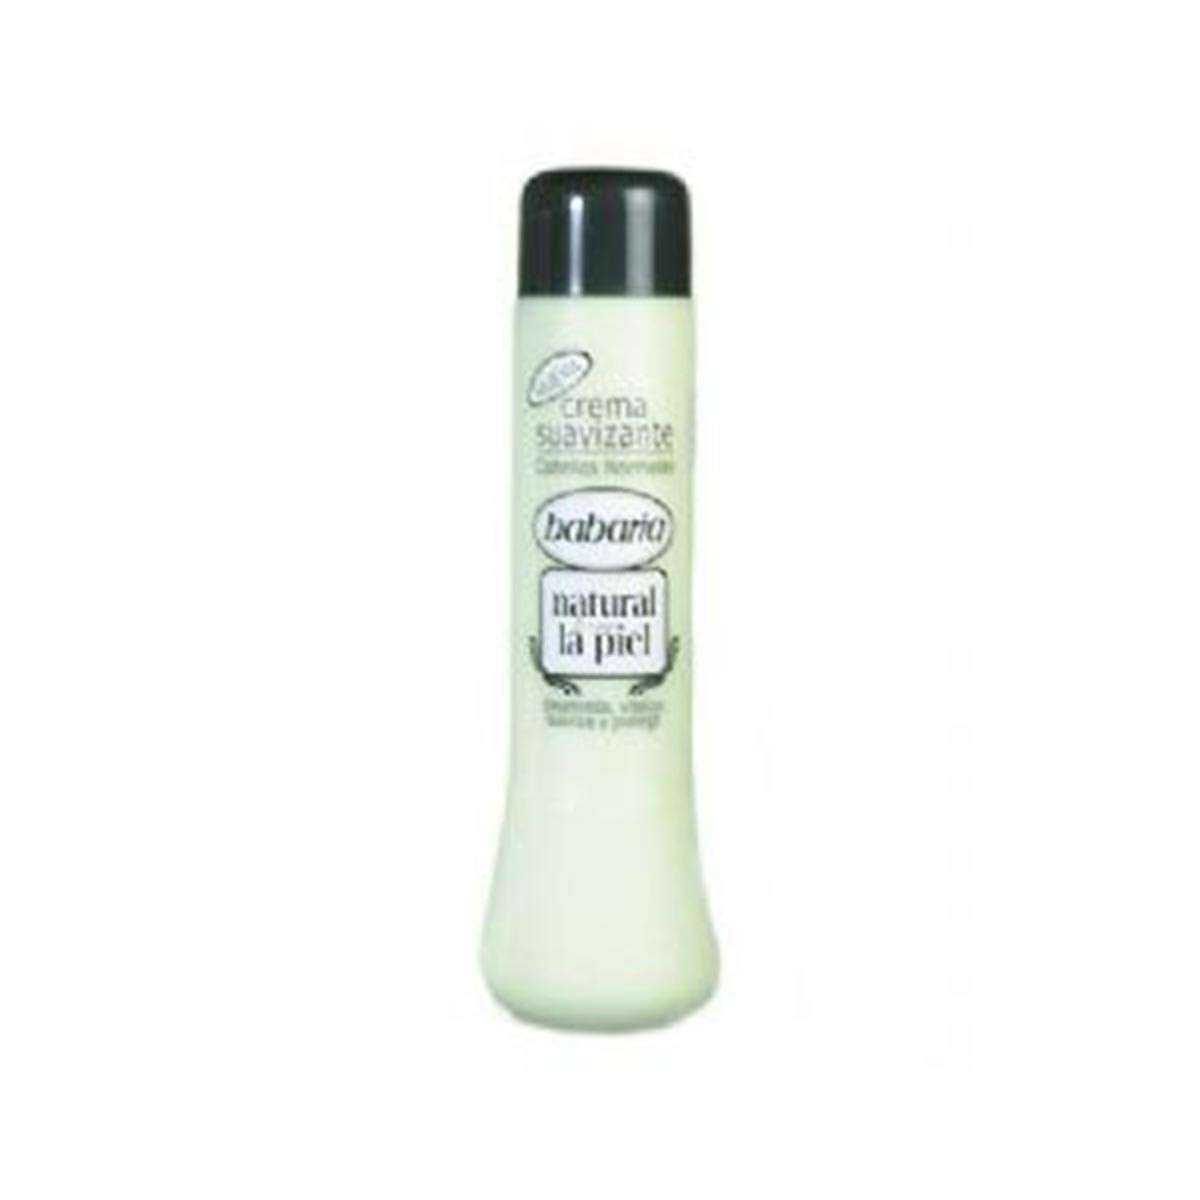 Babaria fragrances Smoothing Cream 1L